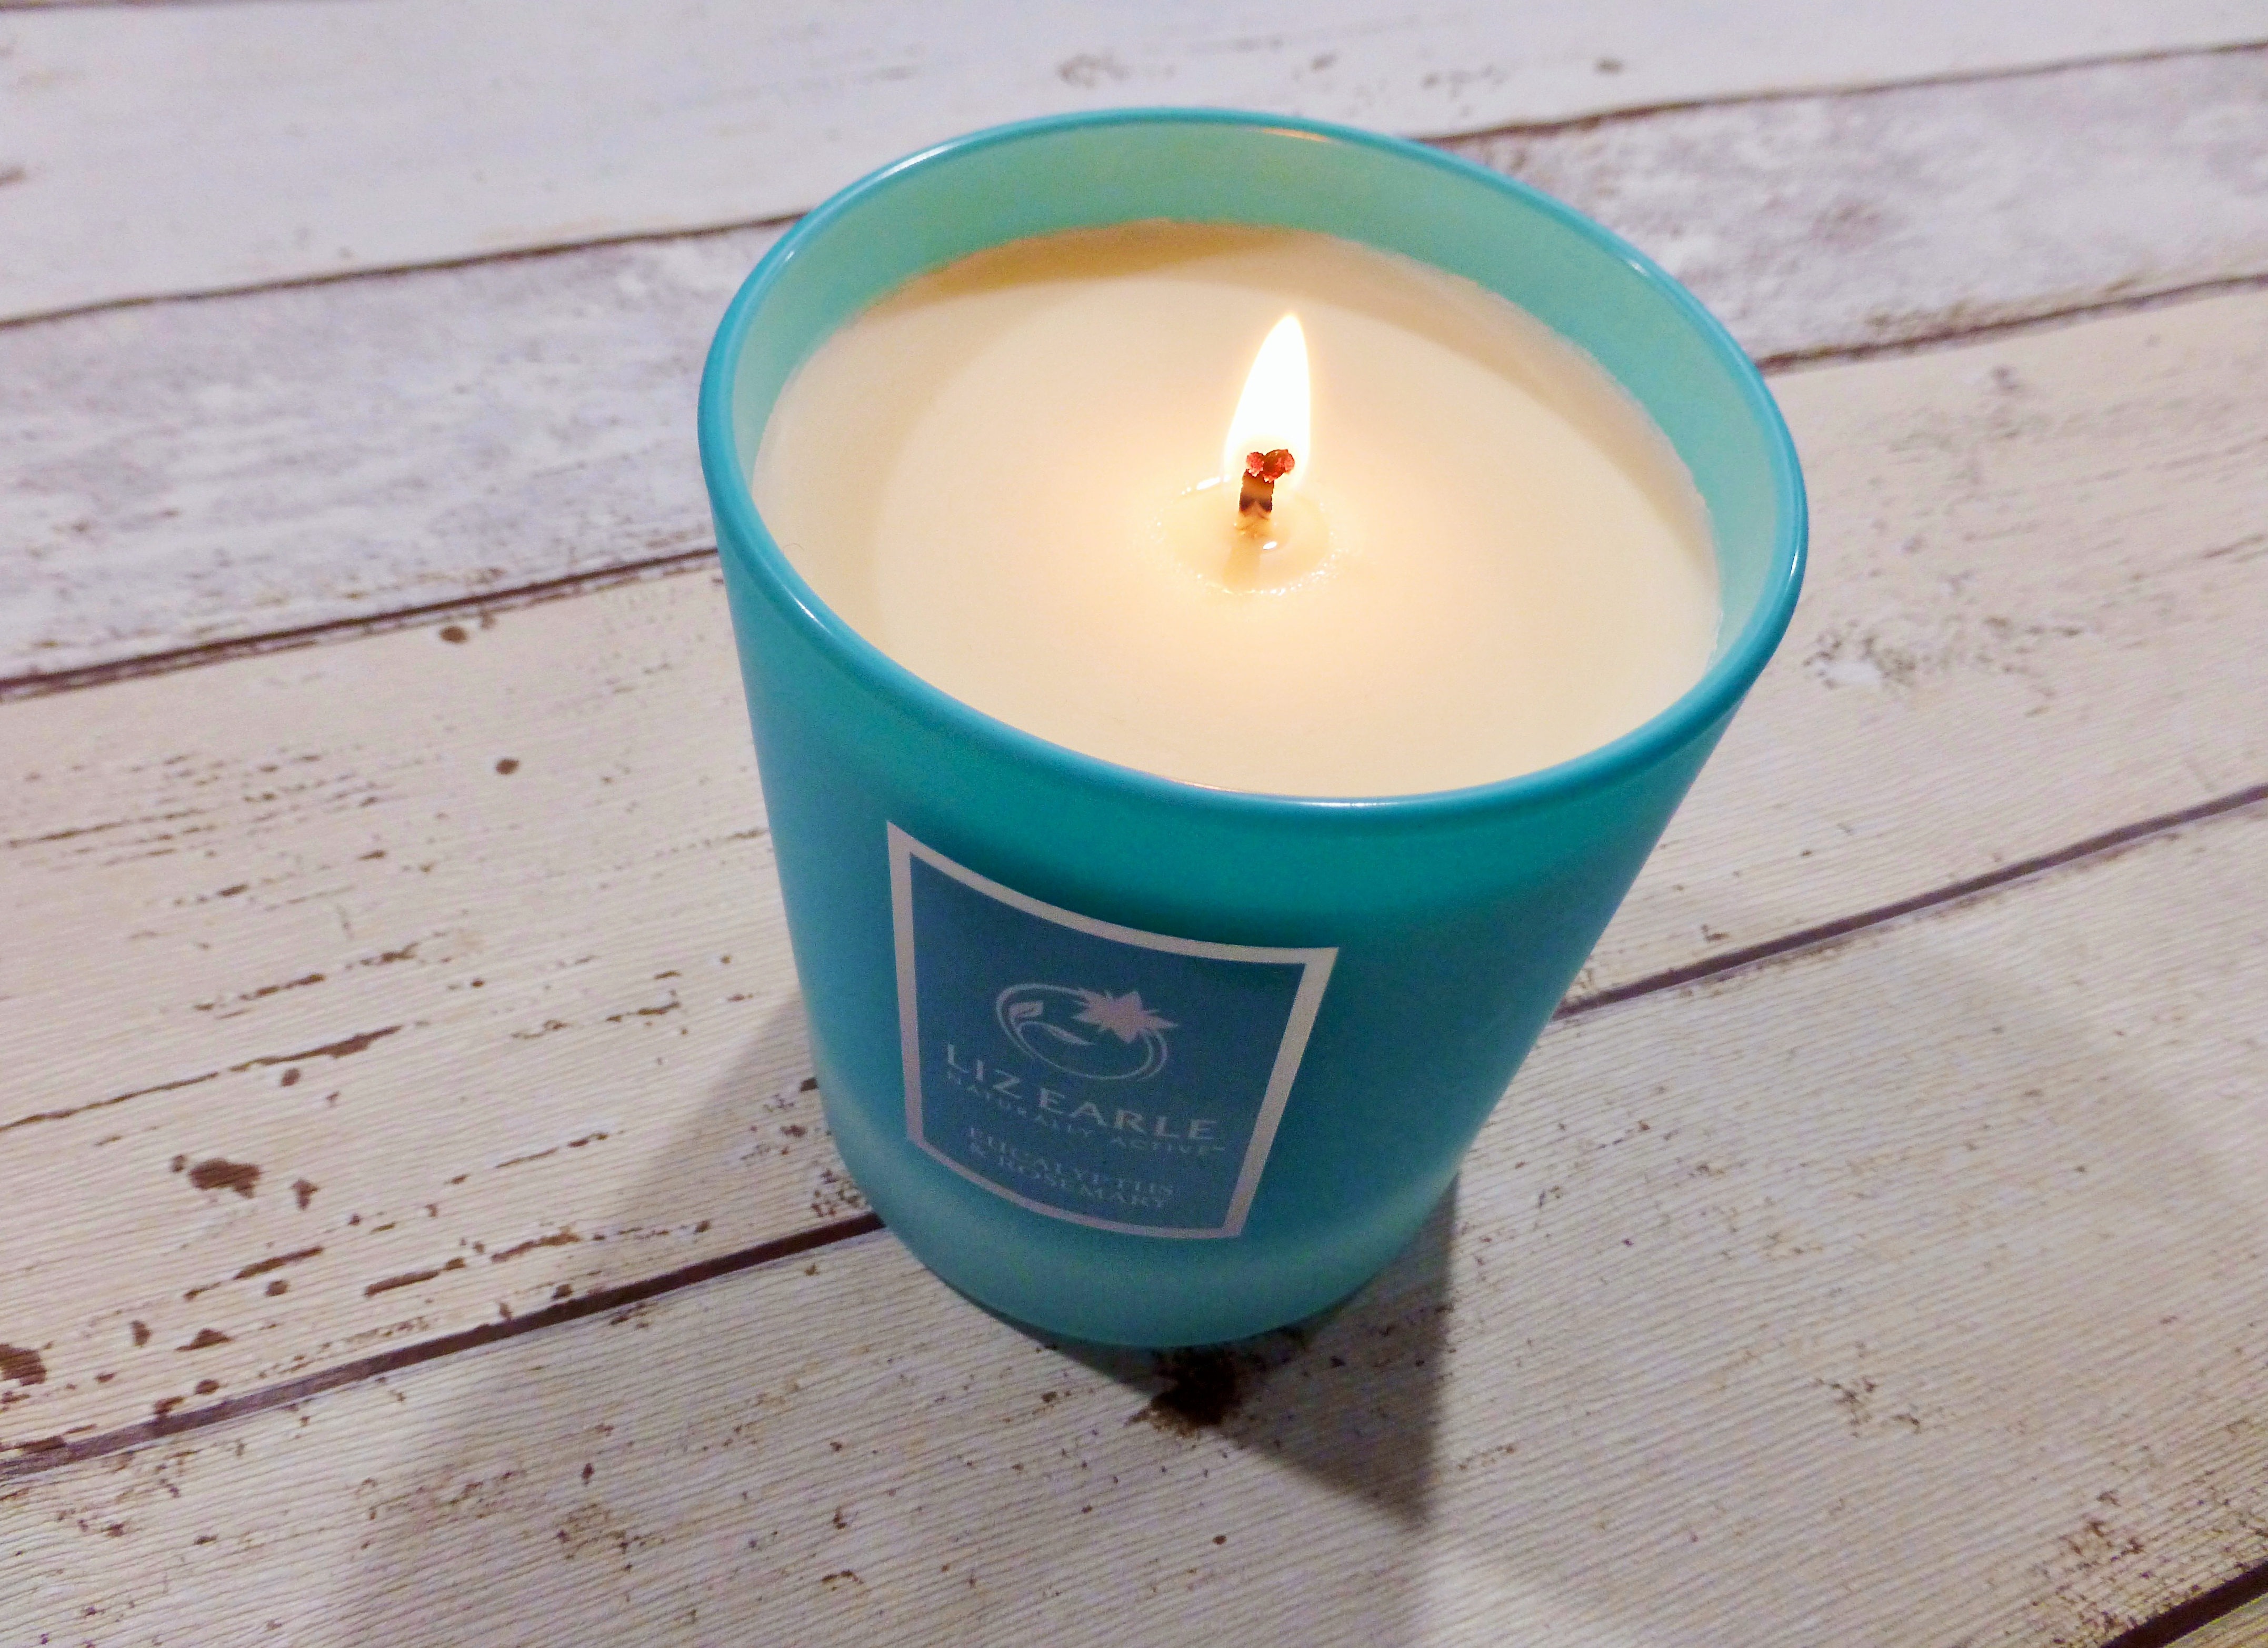 Liz Earle Eucalyptus & Rosemary Botanical Candle